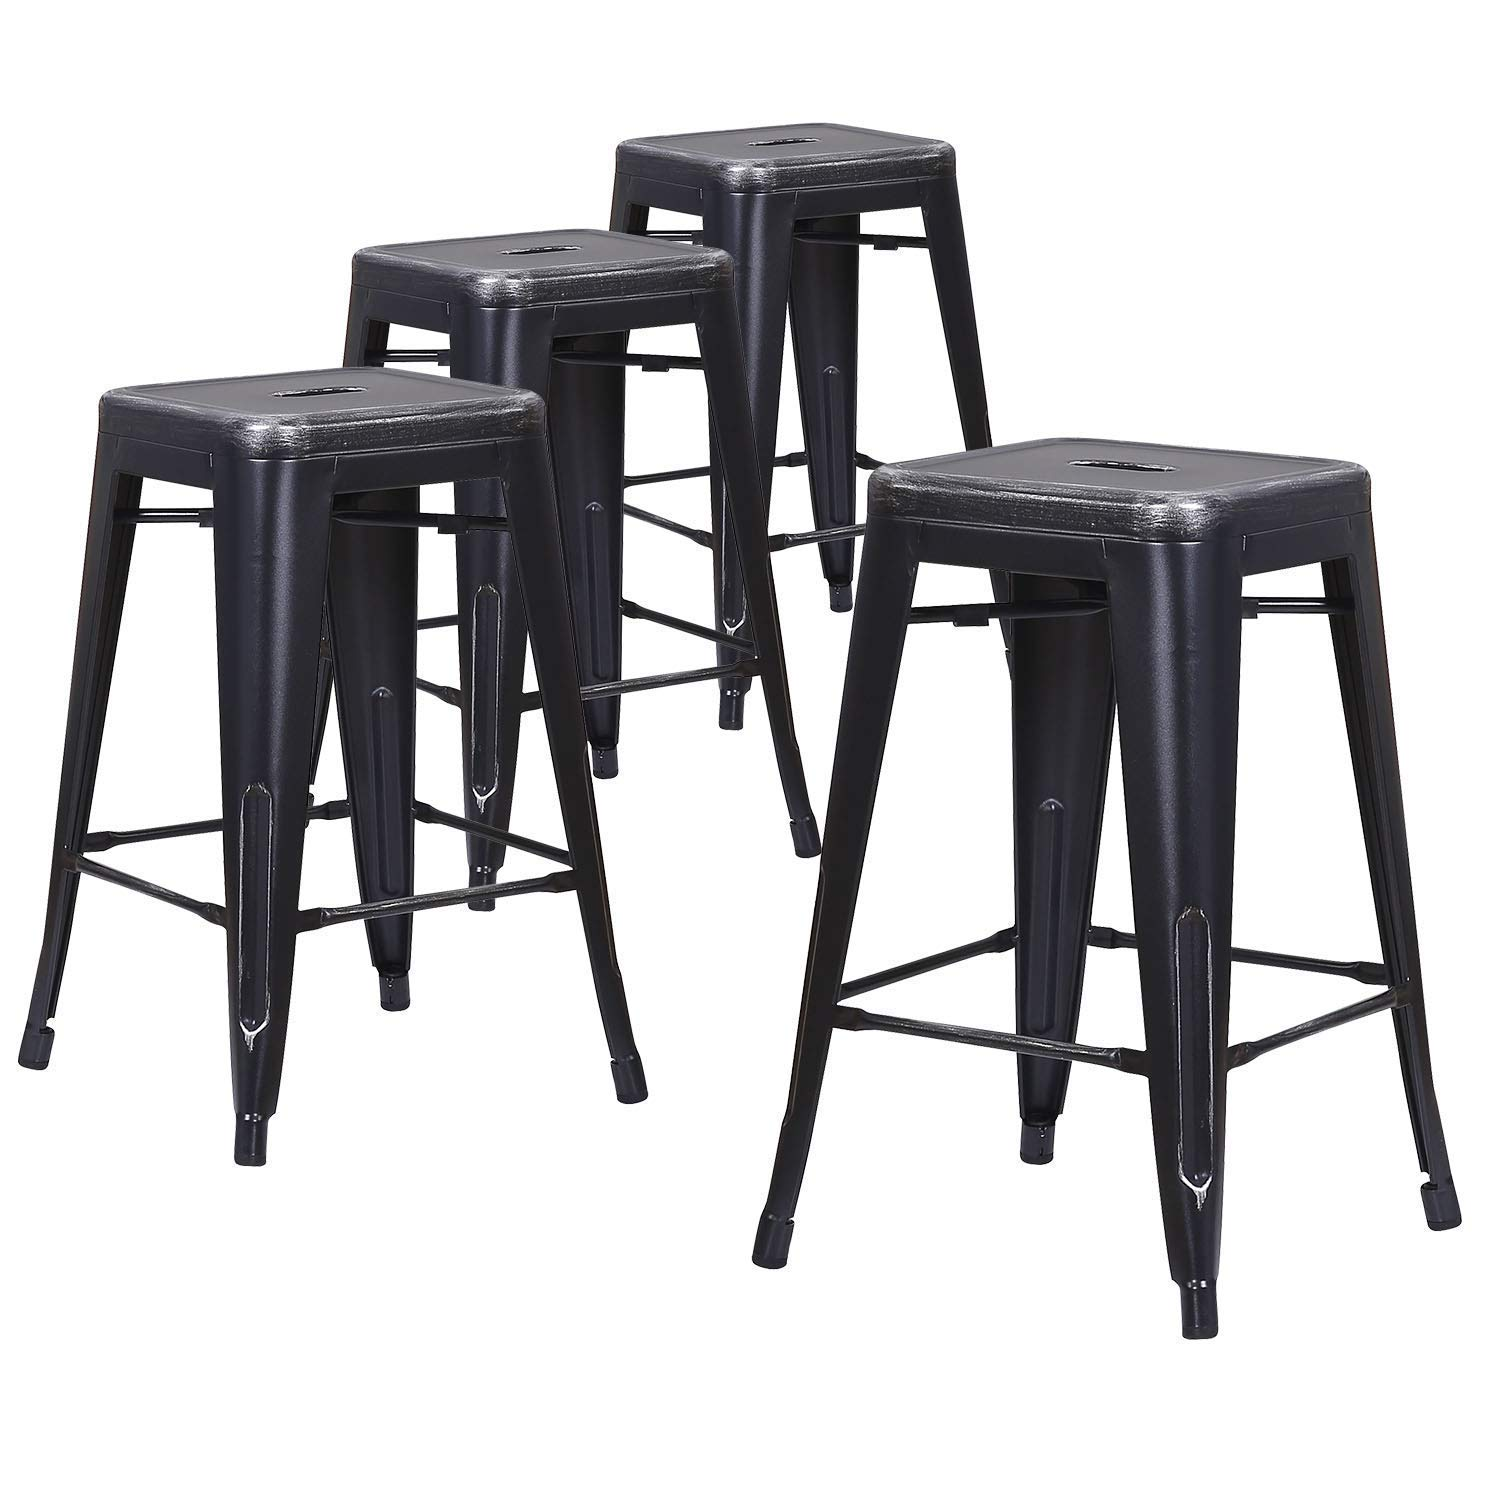 LCH 24 Metal Industrial Backless Bar Stools, Set of 4 Indoor Outdoor Counter Stackable Barstool, Silver Sanded Black